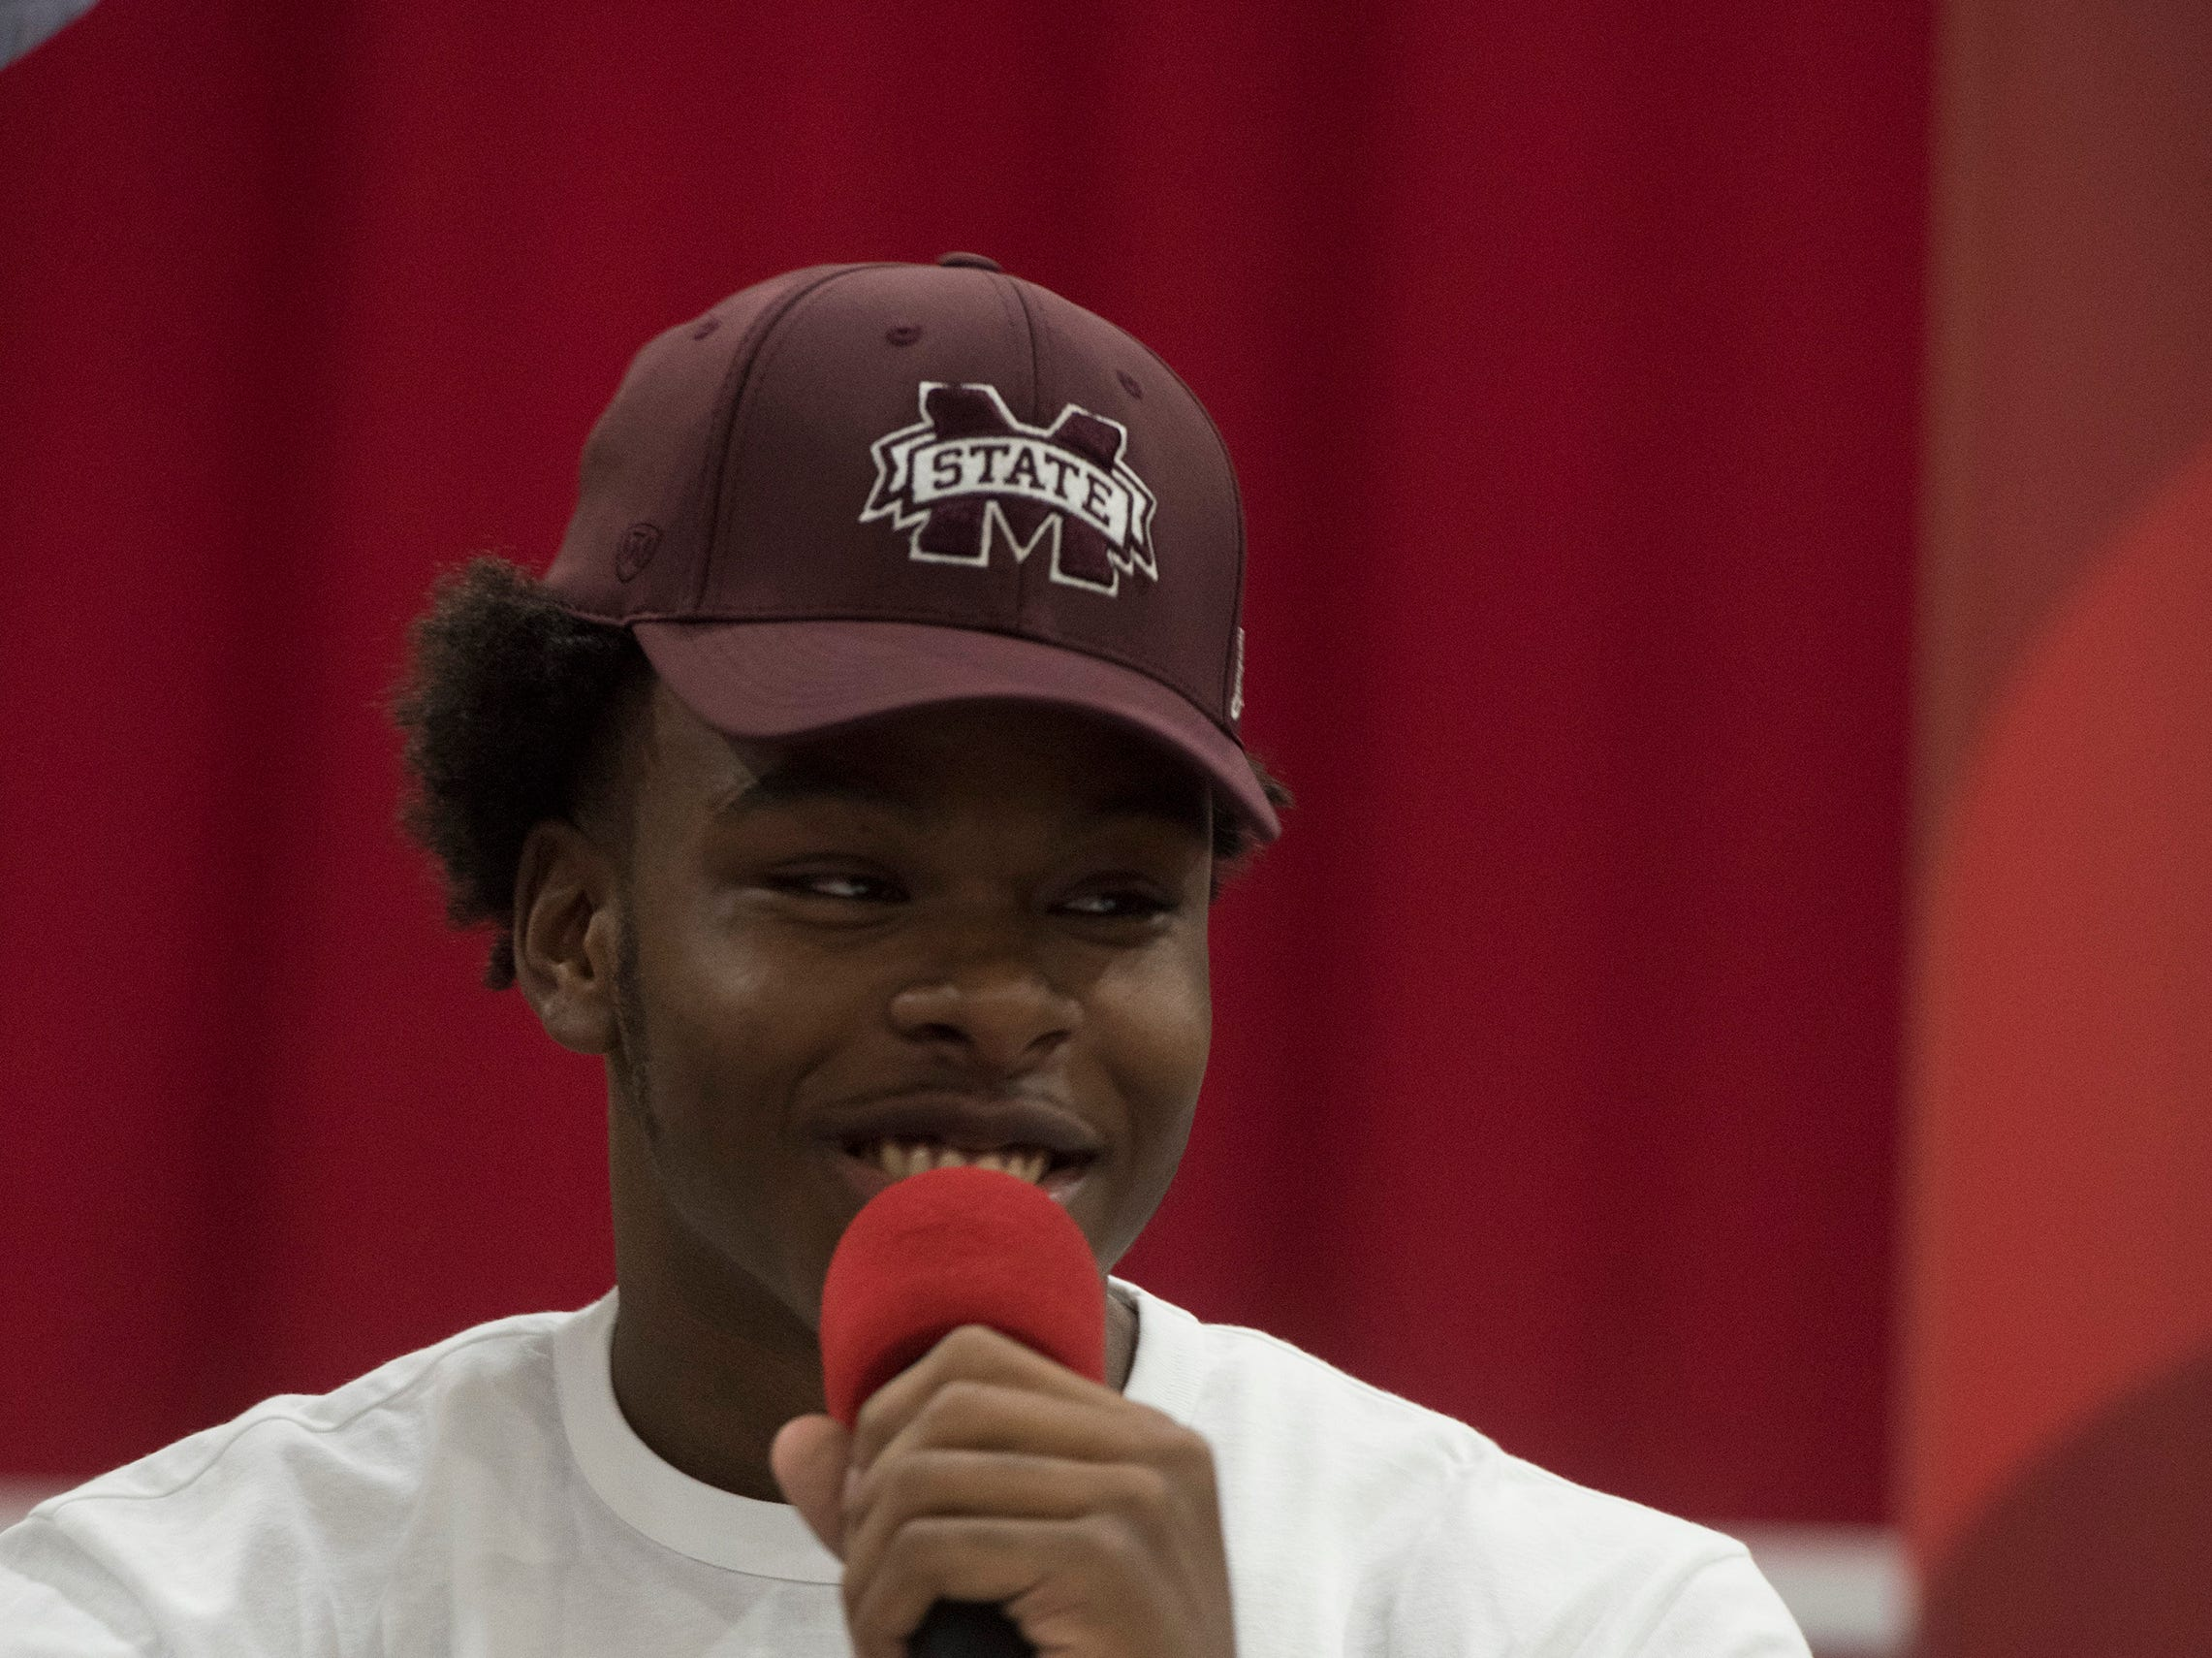 Pine Forest High School's Martin Emerson commits to the Mississippi State University on National Signing Day on Wednesday Feb.6, 2019, as his family and friends look on.